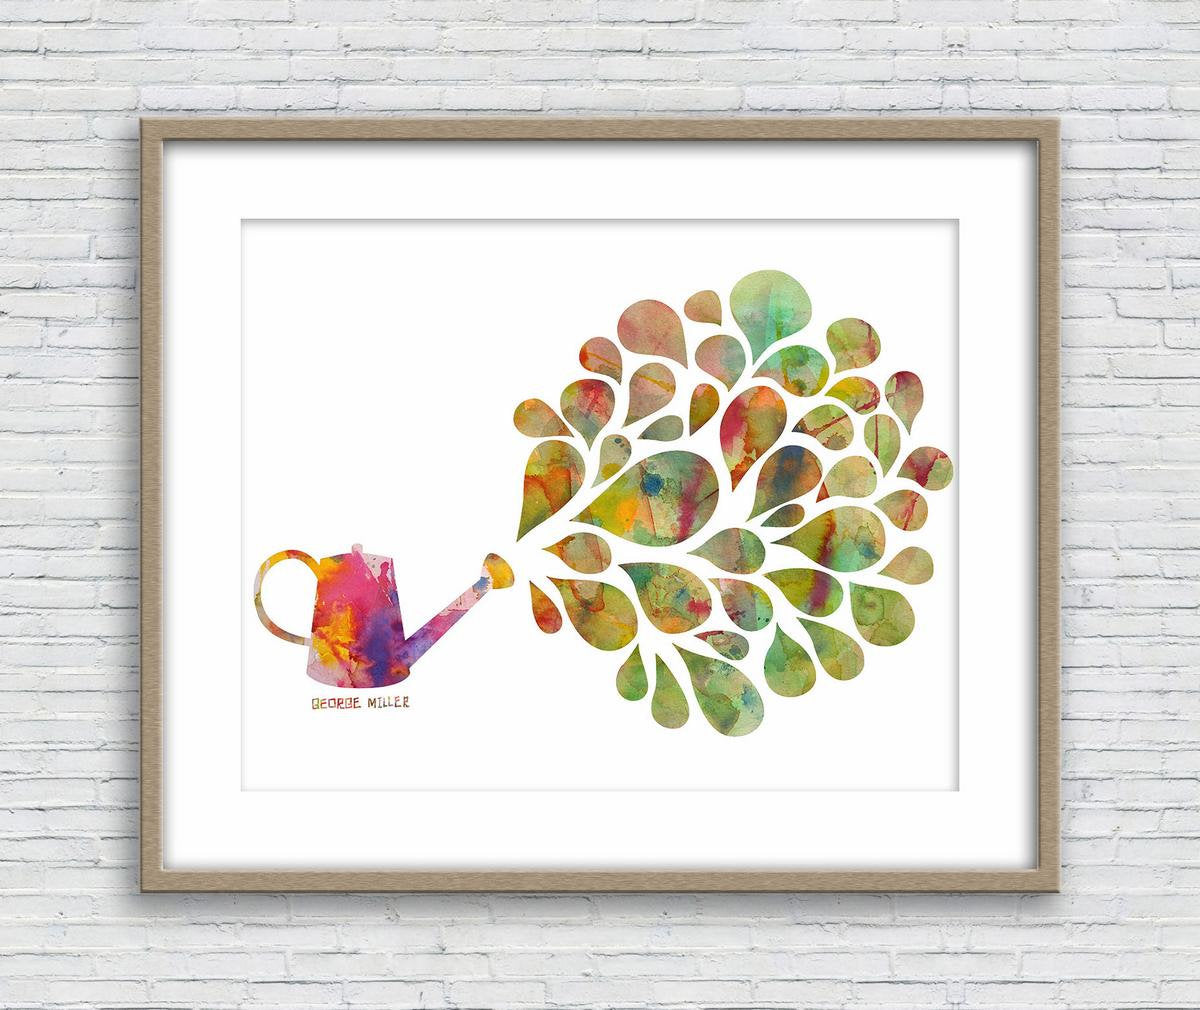 Prints Wall Art, Watercolor Print, Watering can, Wall Decor Bedroom Above Bed, Abstract Painting, Art Prints Watercolor, Kitchen Art Print